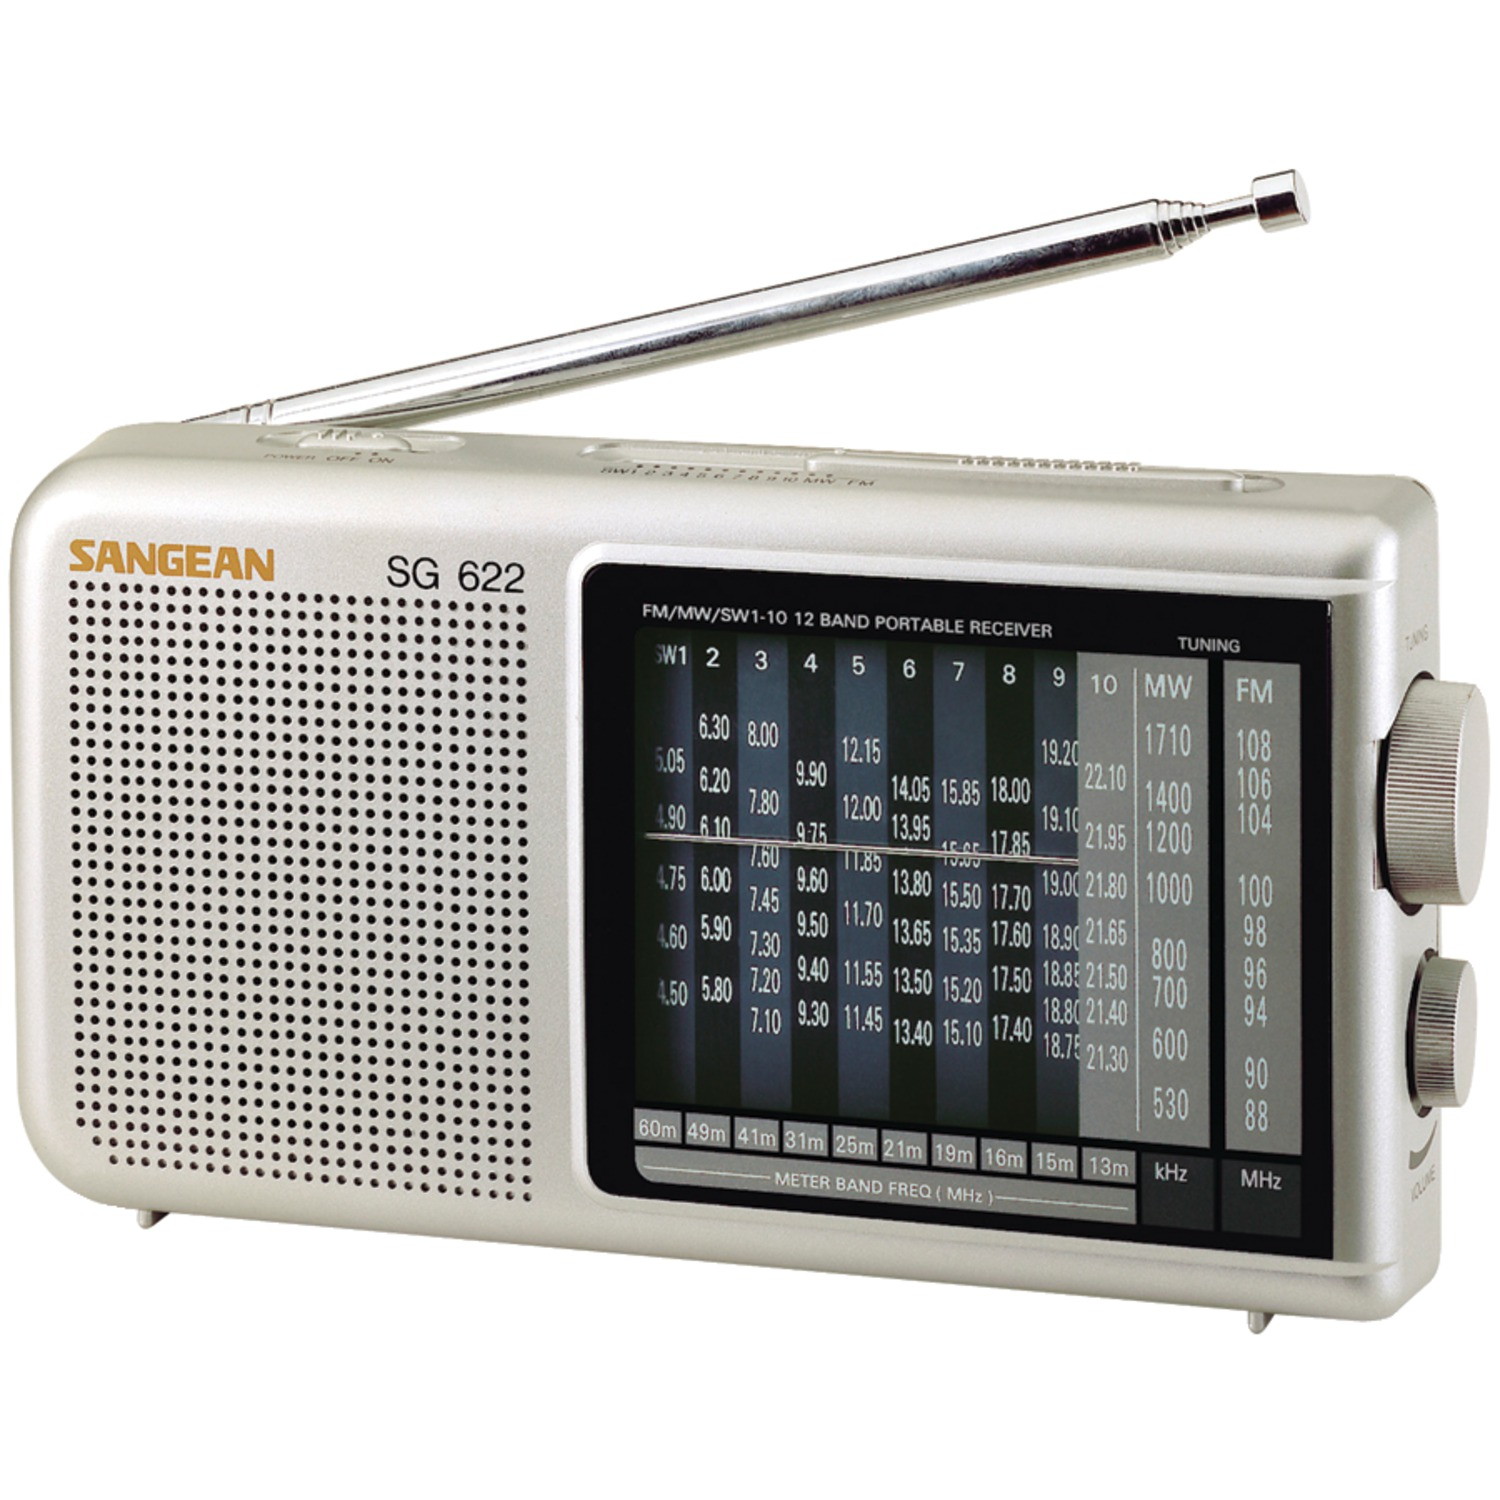 Sangean Sg622 12-band Compact World Band Receiver With Led by Sangean